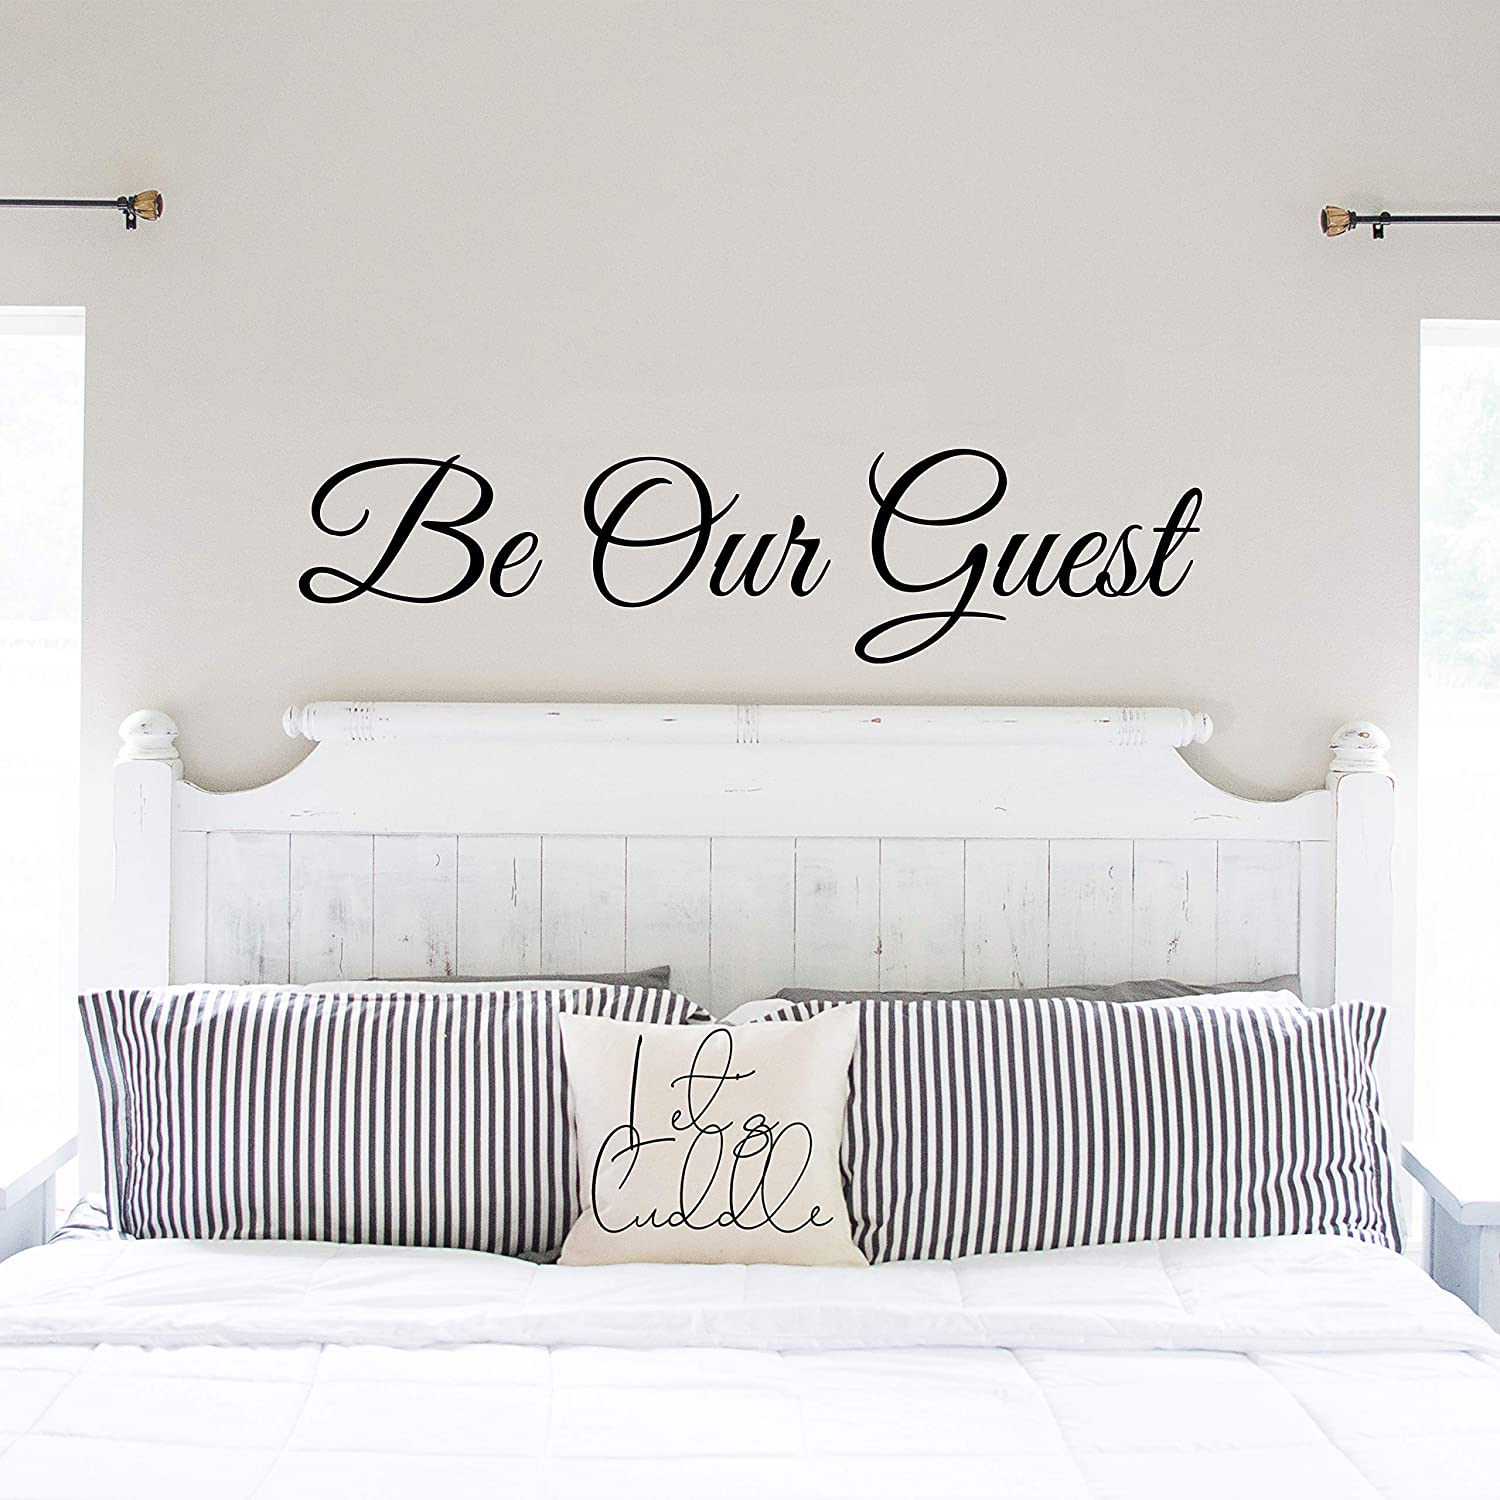 My Vinyl Story - Be Our Guest - Wall Decals for Door Family Decal Quote Word Sayings Sticker Sign Family Decor Removable Vinyl for Office Guest Room Home 36x9 Inches